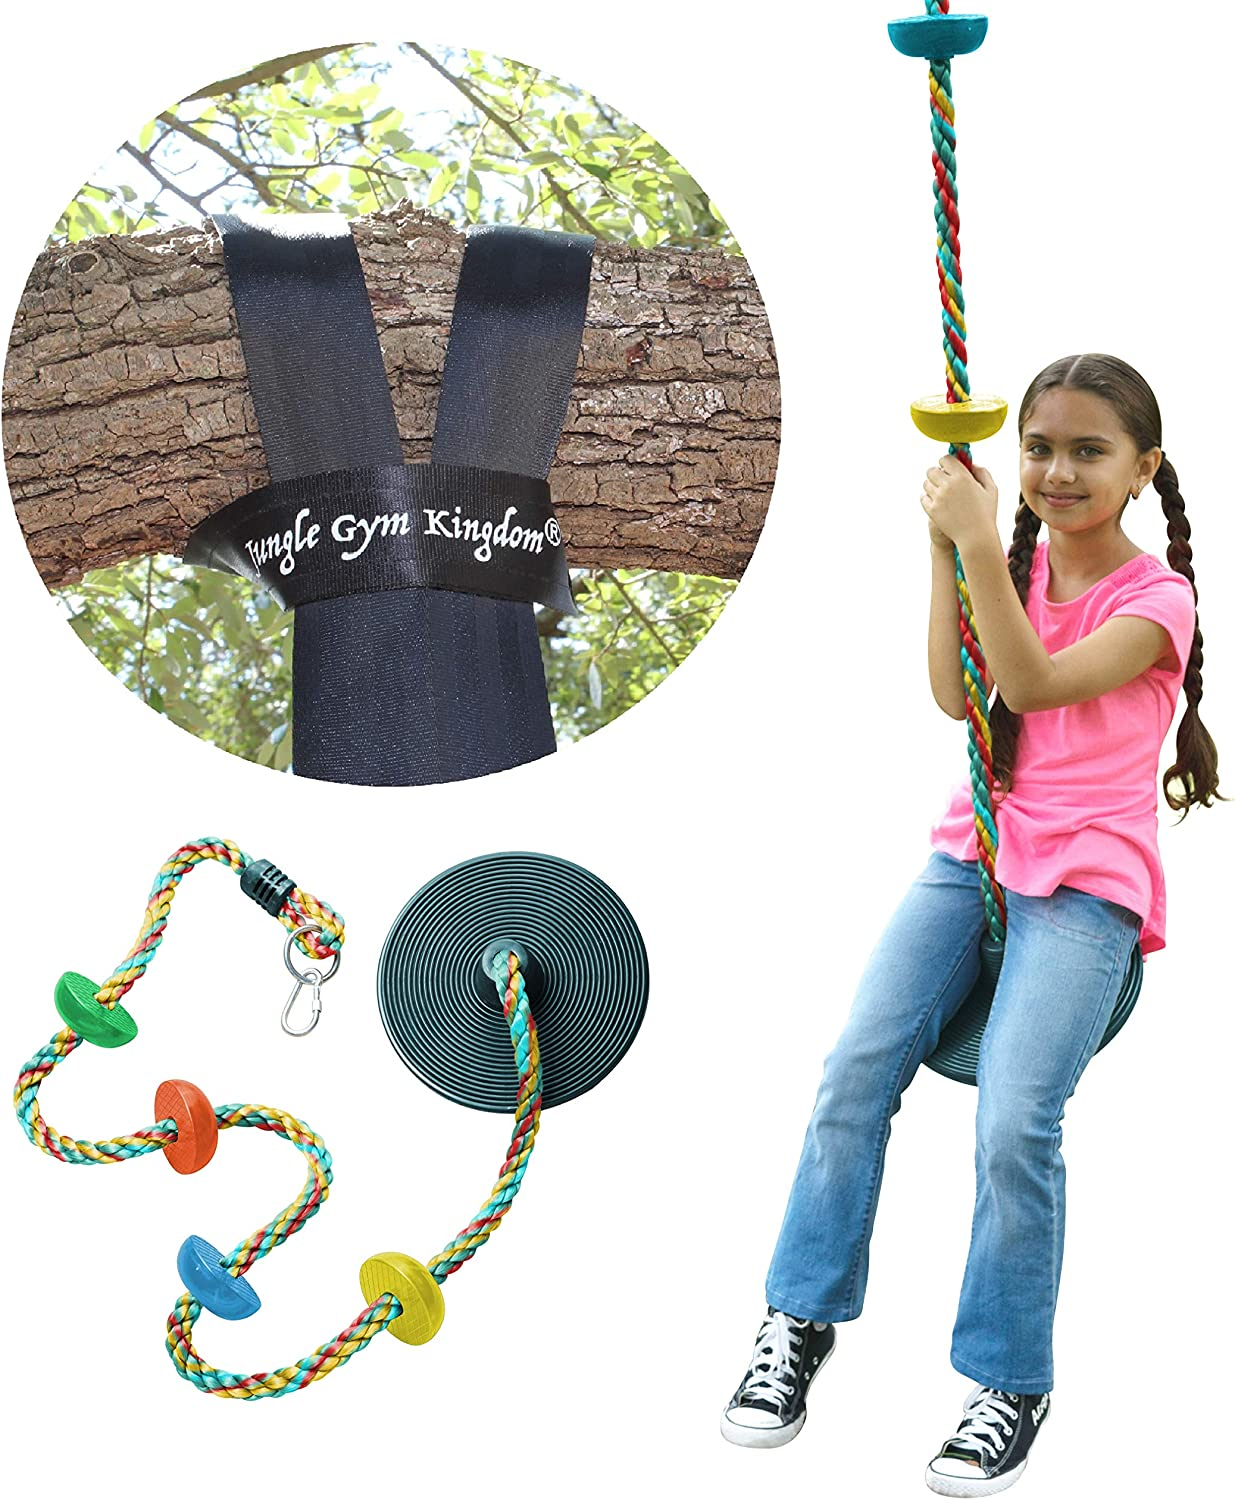 Jungle Gym Kingdom Tree Swing Multicolor Climbing Rope with Platforms Green Disc Swings Seat - Outdoor Playground Set Accessories Tree House Flying Saucer Outside Toys - Bonus Carabiner & 4 Feet Strap